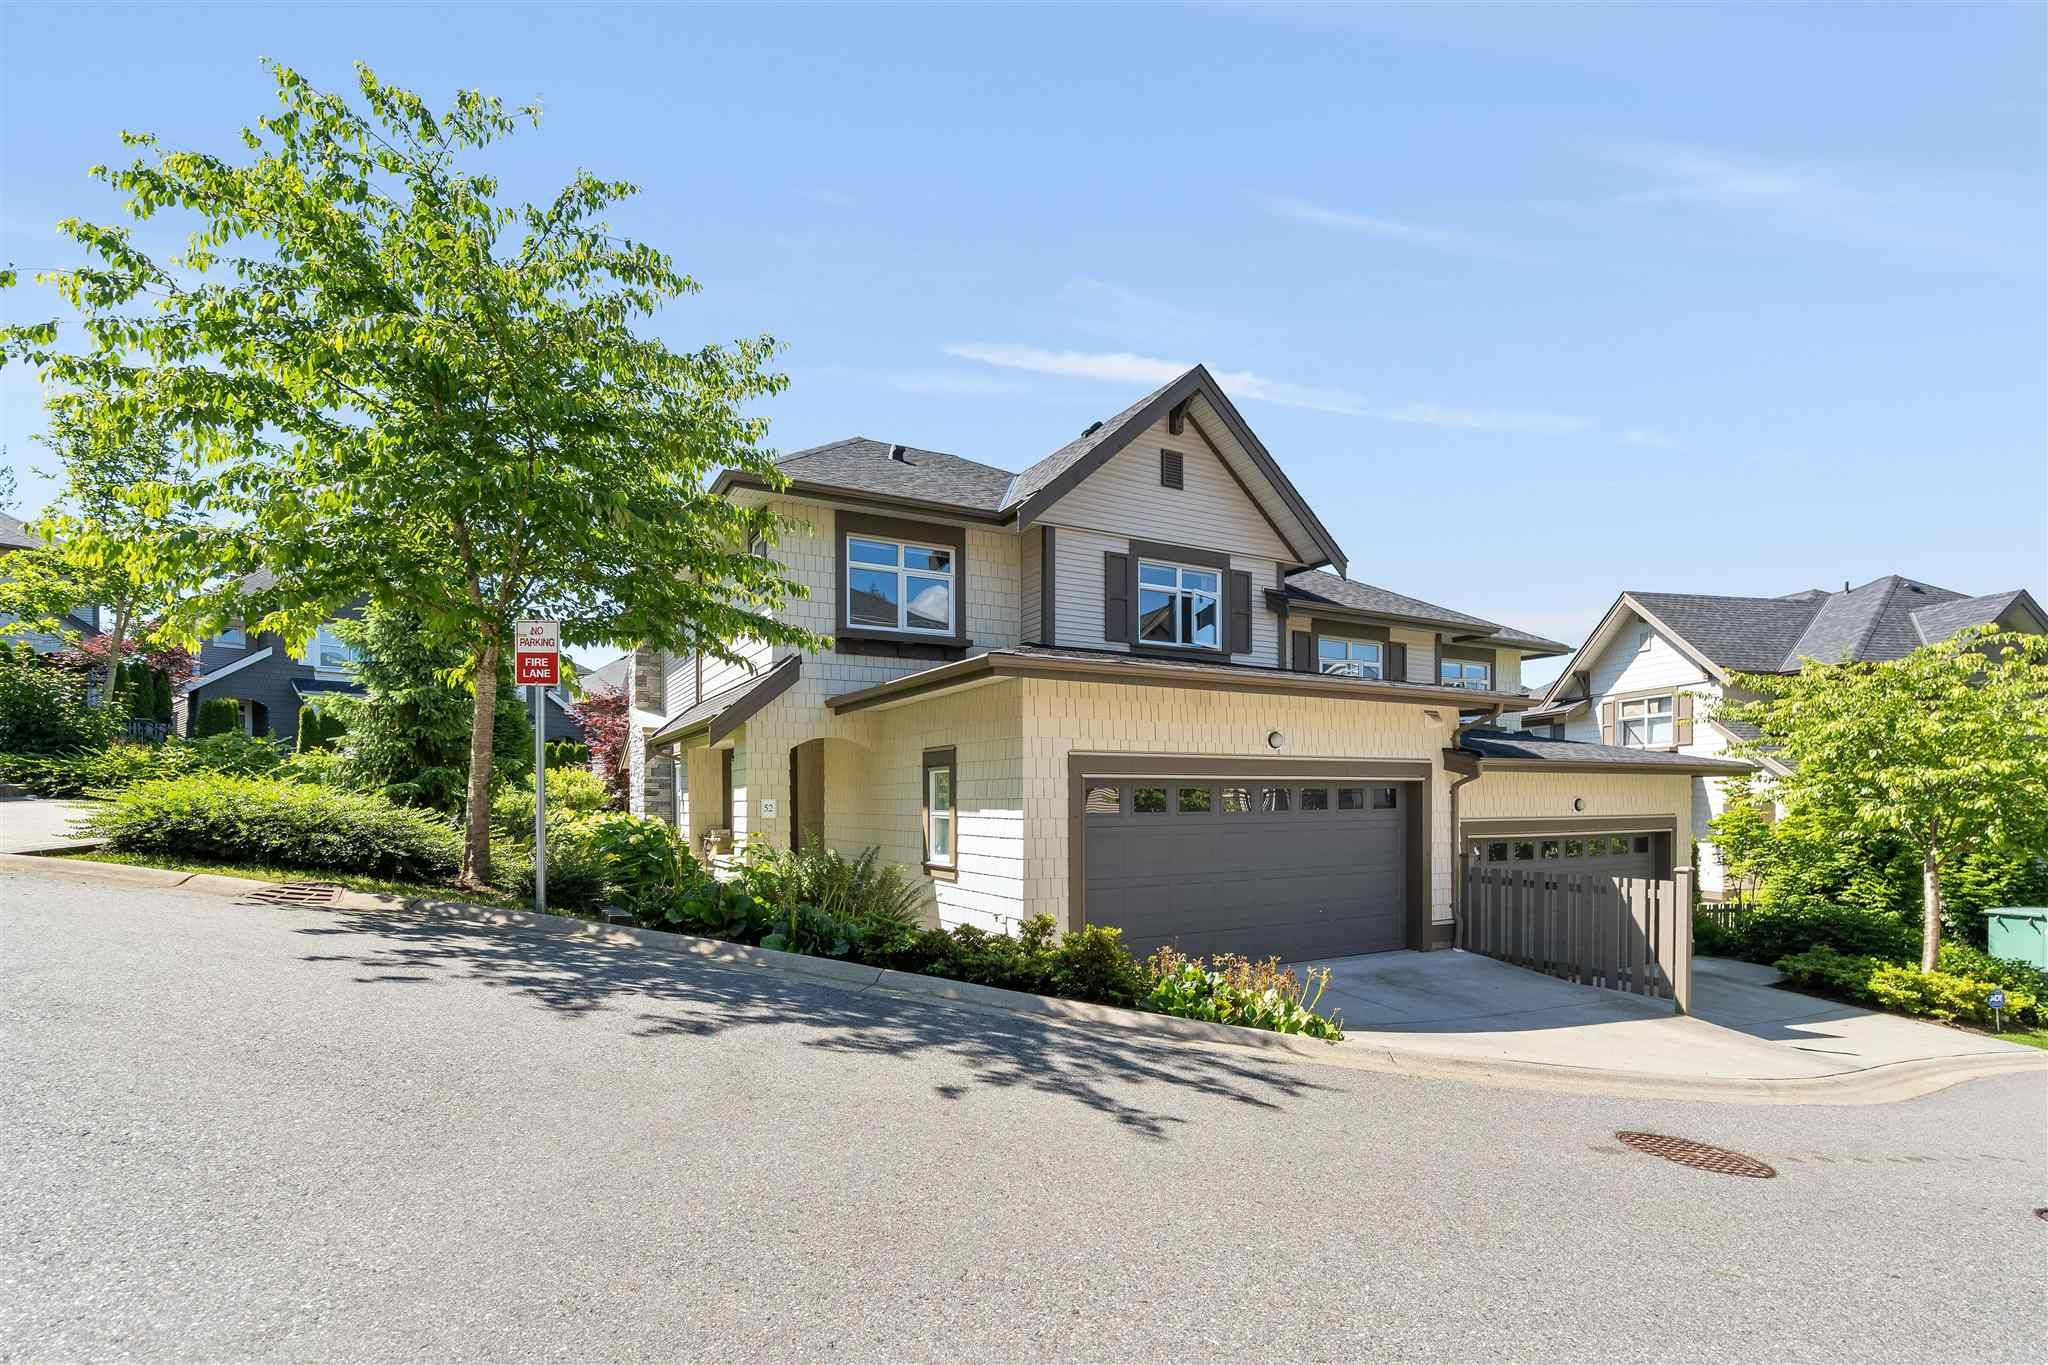 """Main Photo: 52 3400 DEVONSHIRE Avenue in Coquitlam: Burke Mountain Townhouse for sale in """"COLBORNE LANE BUILT BY POLYGON"""" : MLS®# R2594910"""